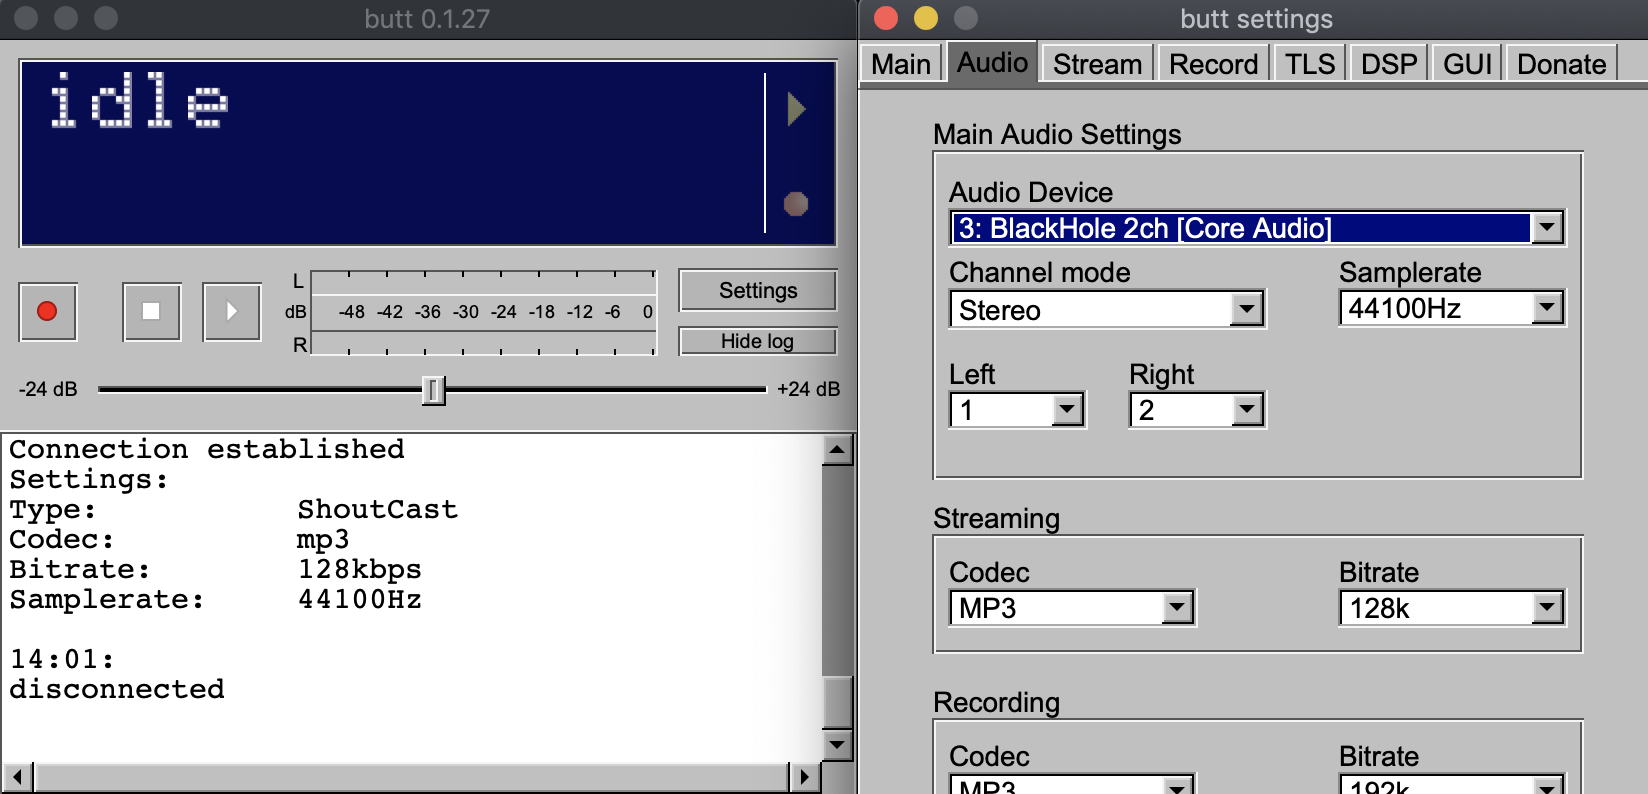 Updating audio settings in BUTT.